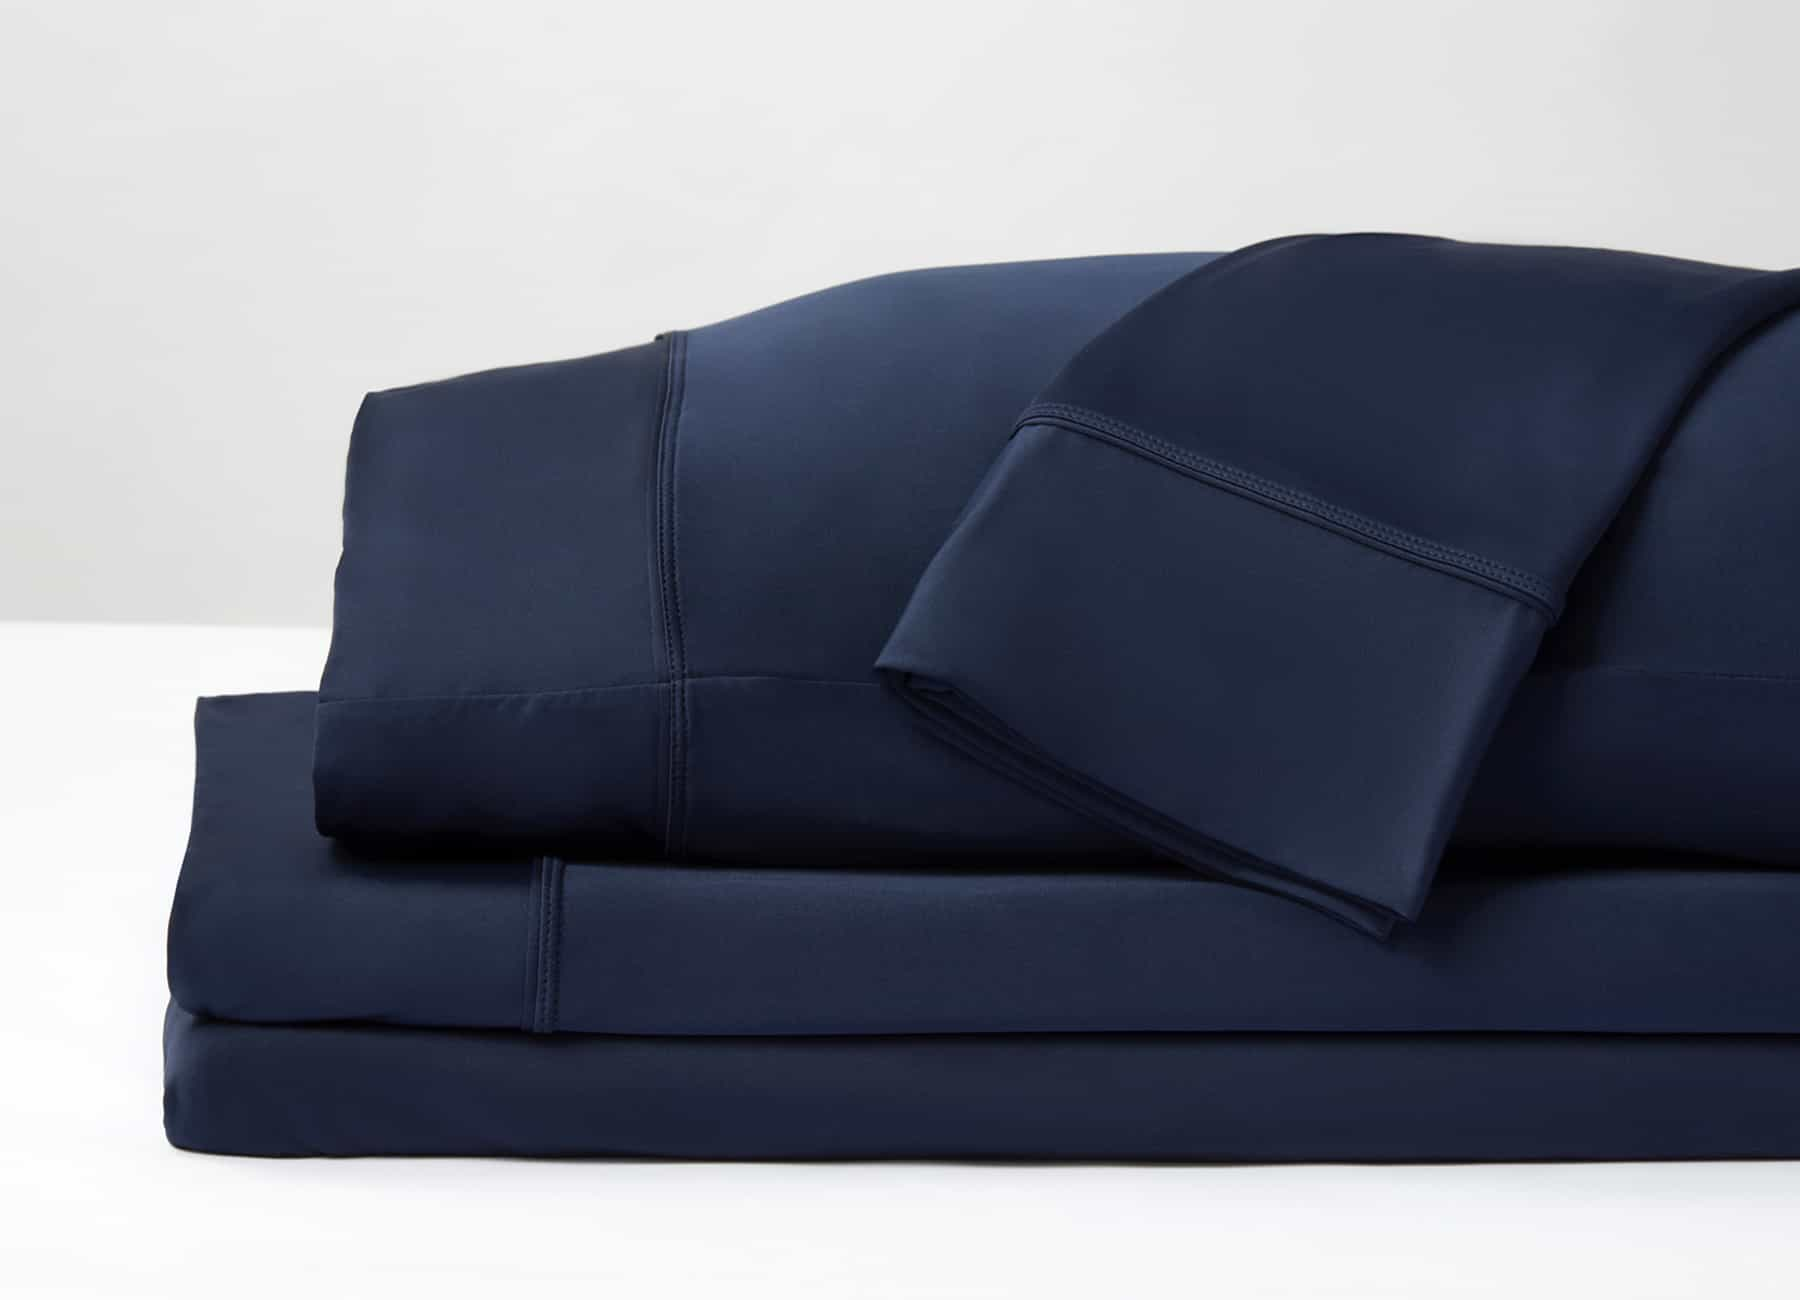 Original Performance Sheet Set Image Shown Folded and Stacked in Navy #choose-your-color_navy